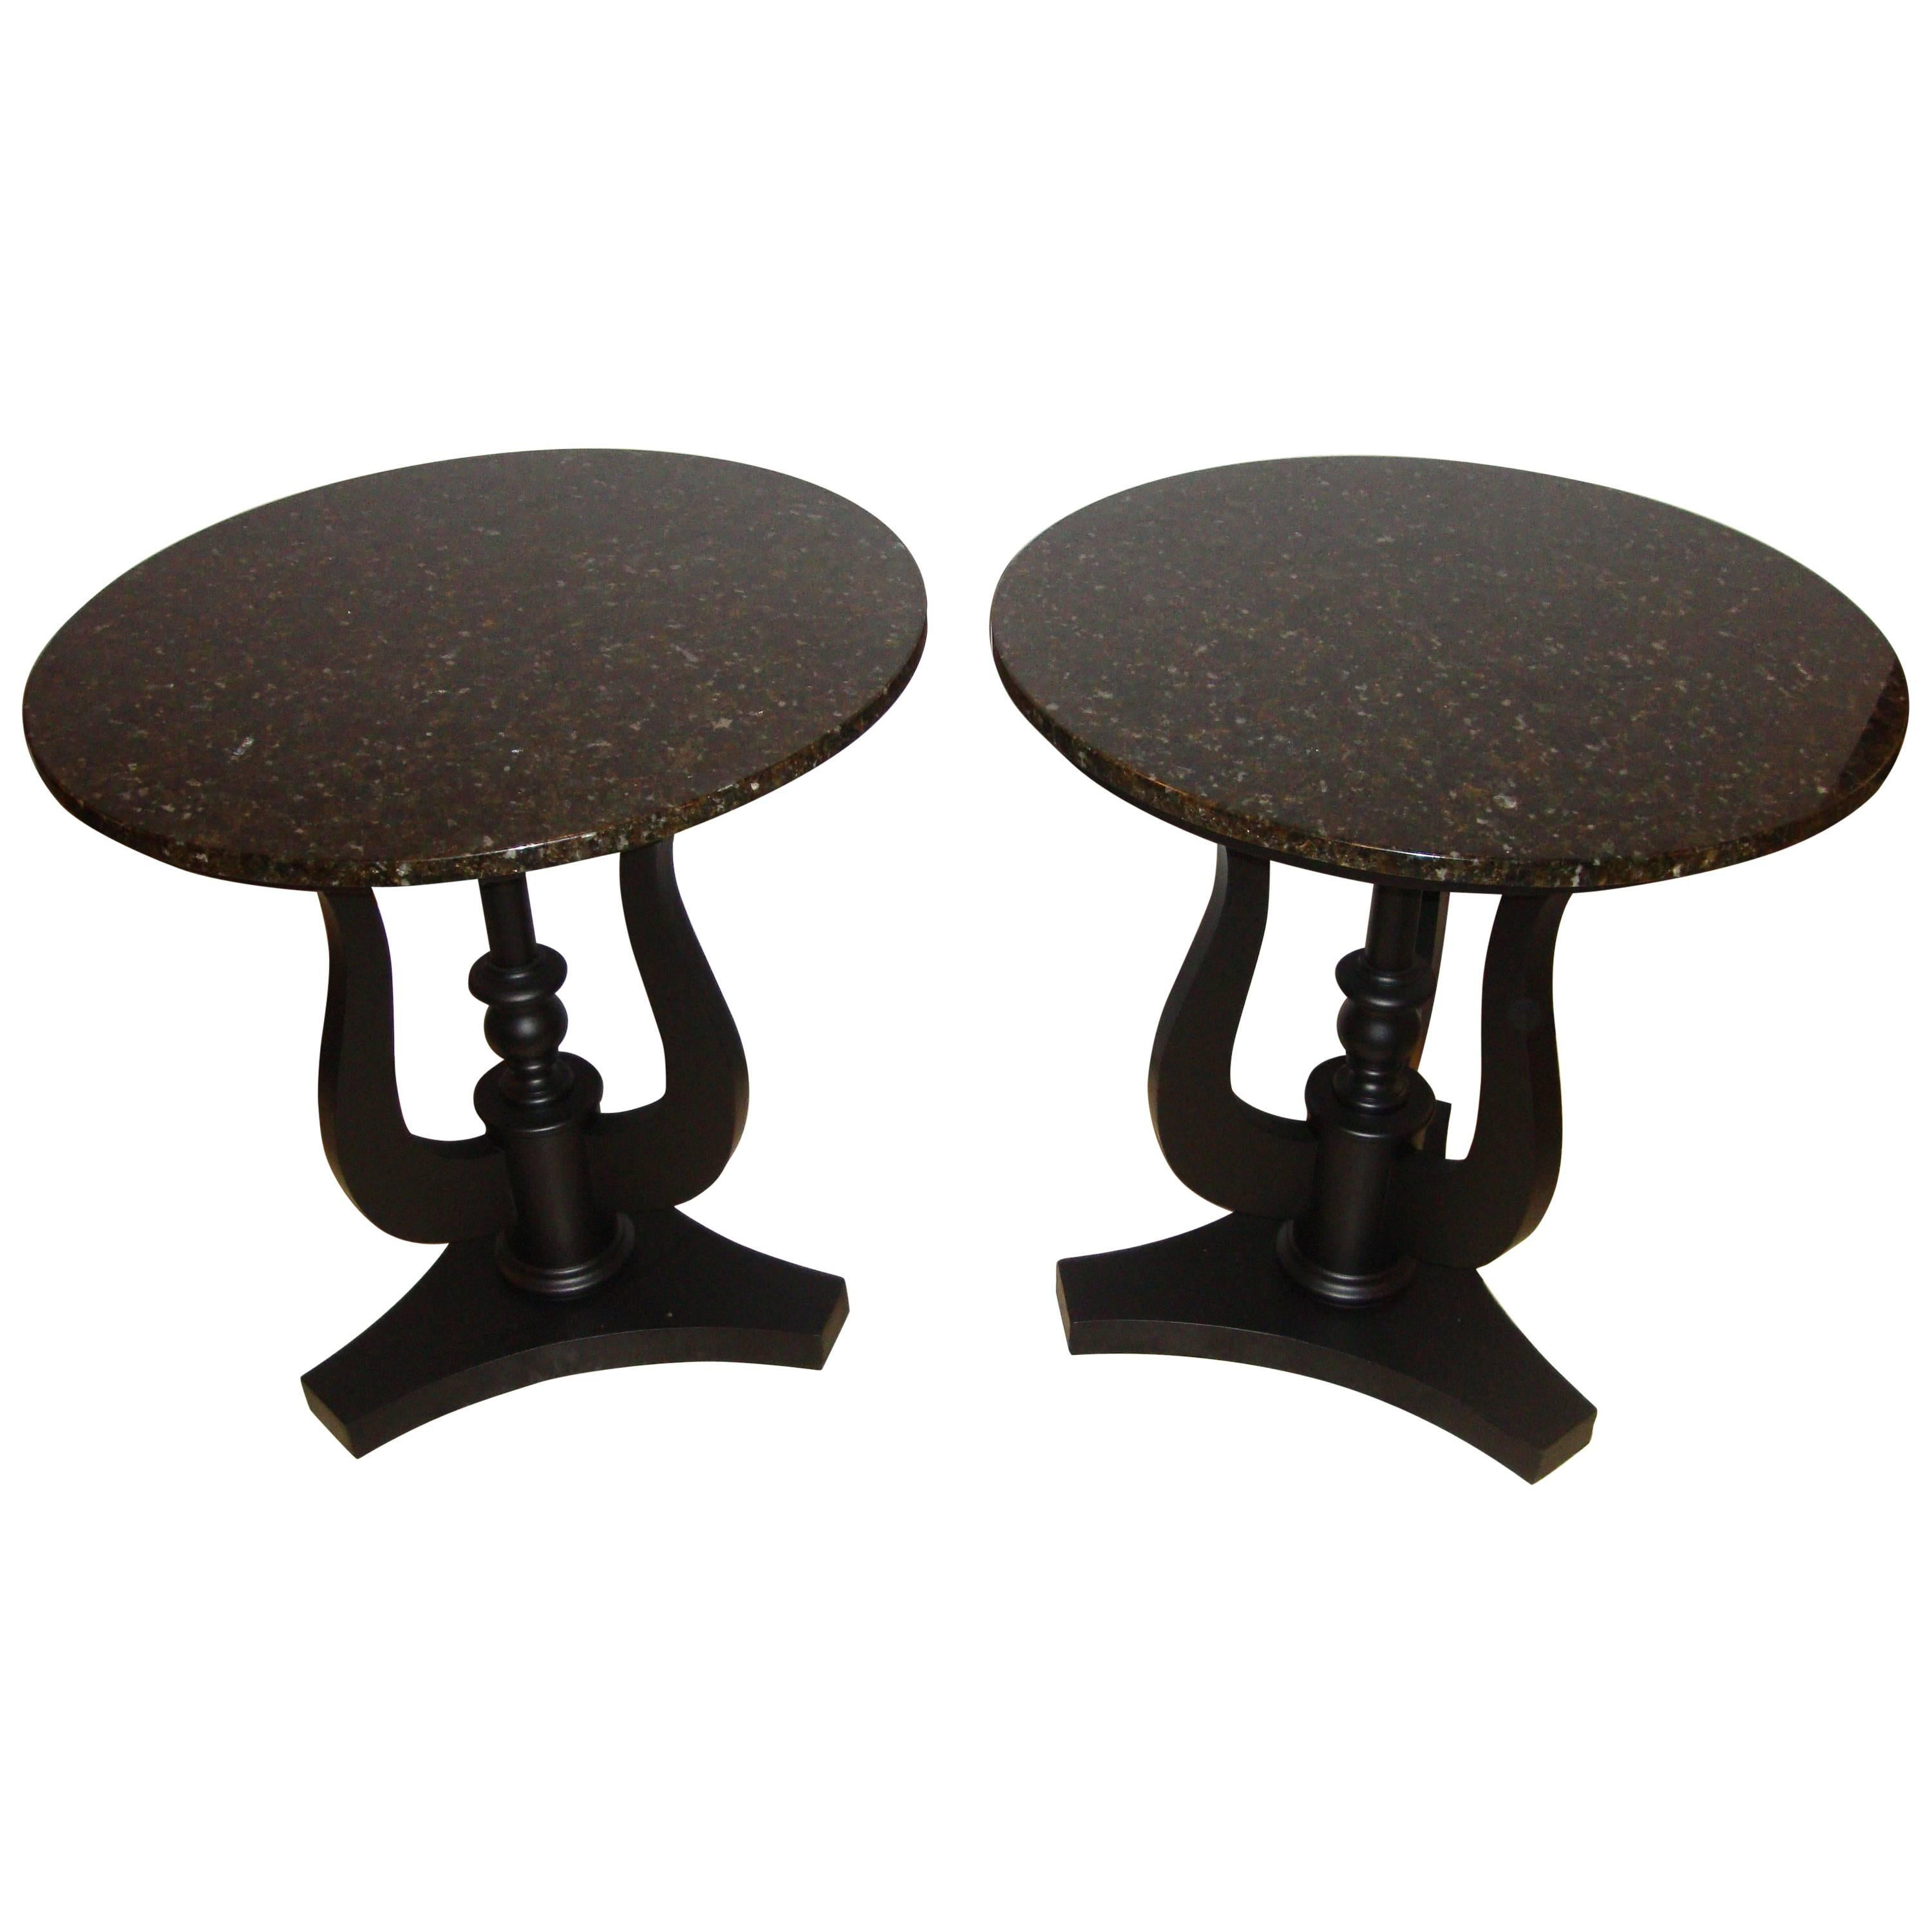 Pair of Art Deco Ebony Based End Tables with Black Marble Tops